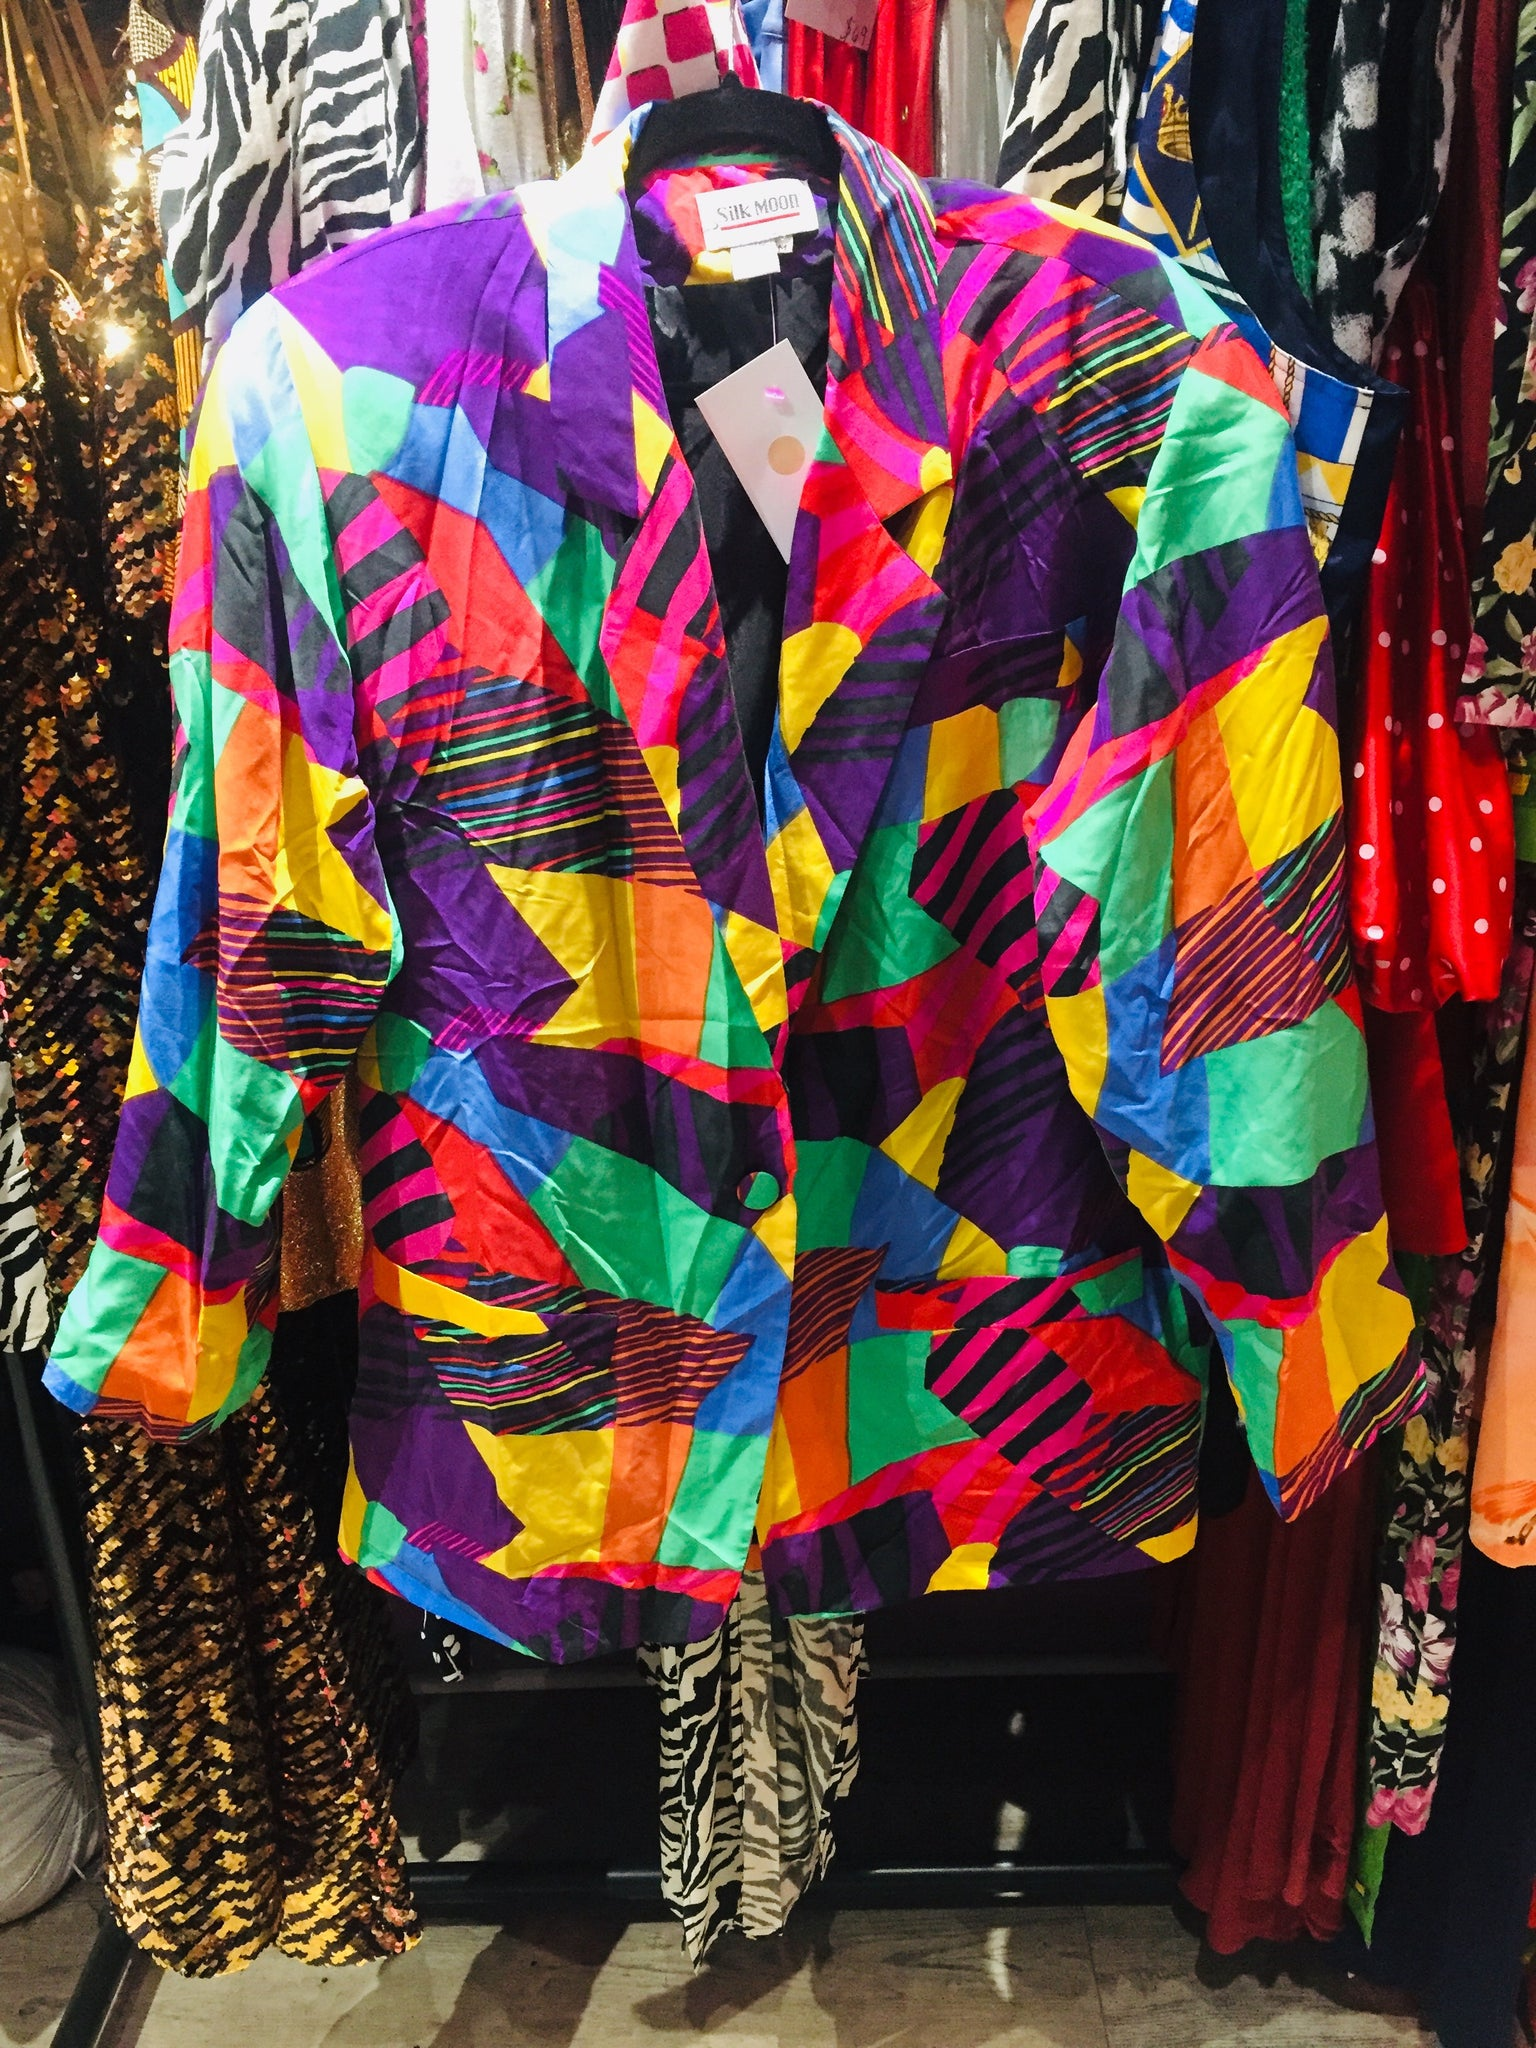 Multicolor Spring Blouse-Jacket Cr\u00eape with Colorful Abstract and Flower Pattern /& Big Collar Unlined Vintage Late 60s-70s Light Blazer